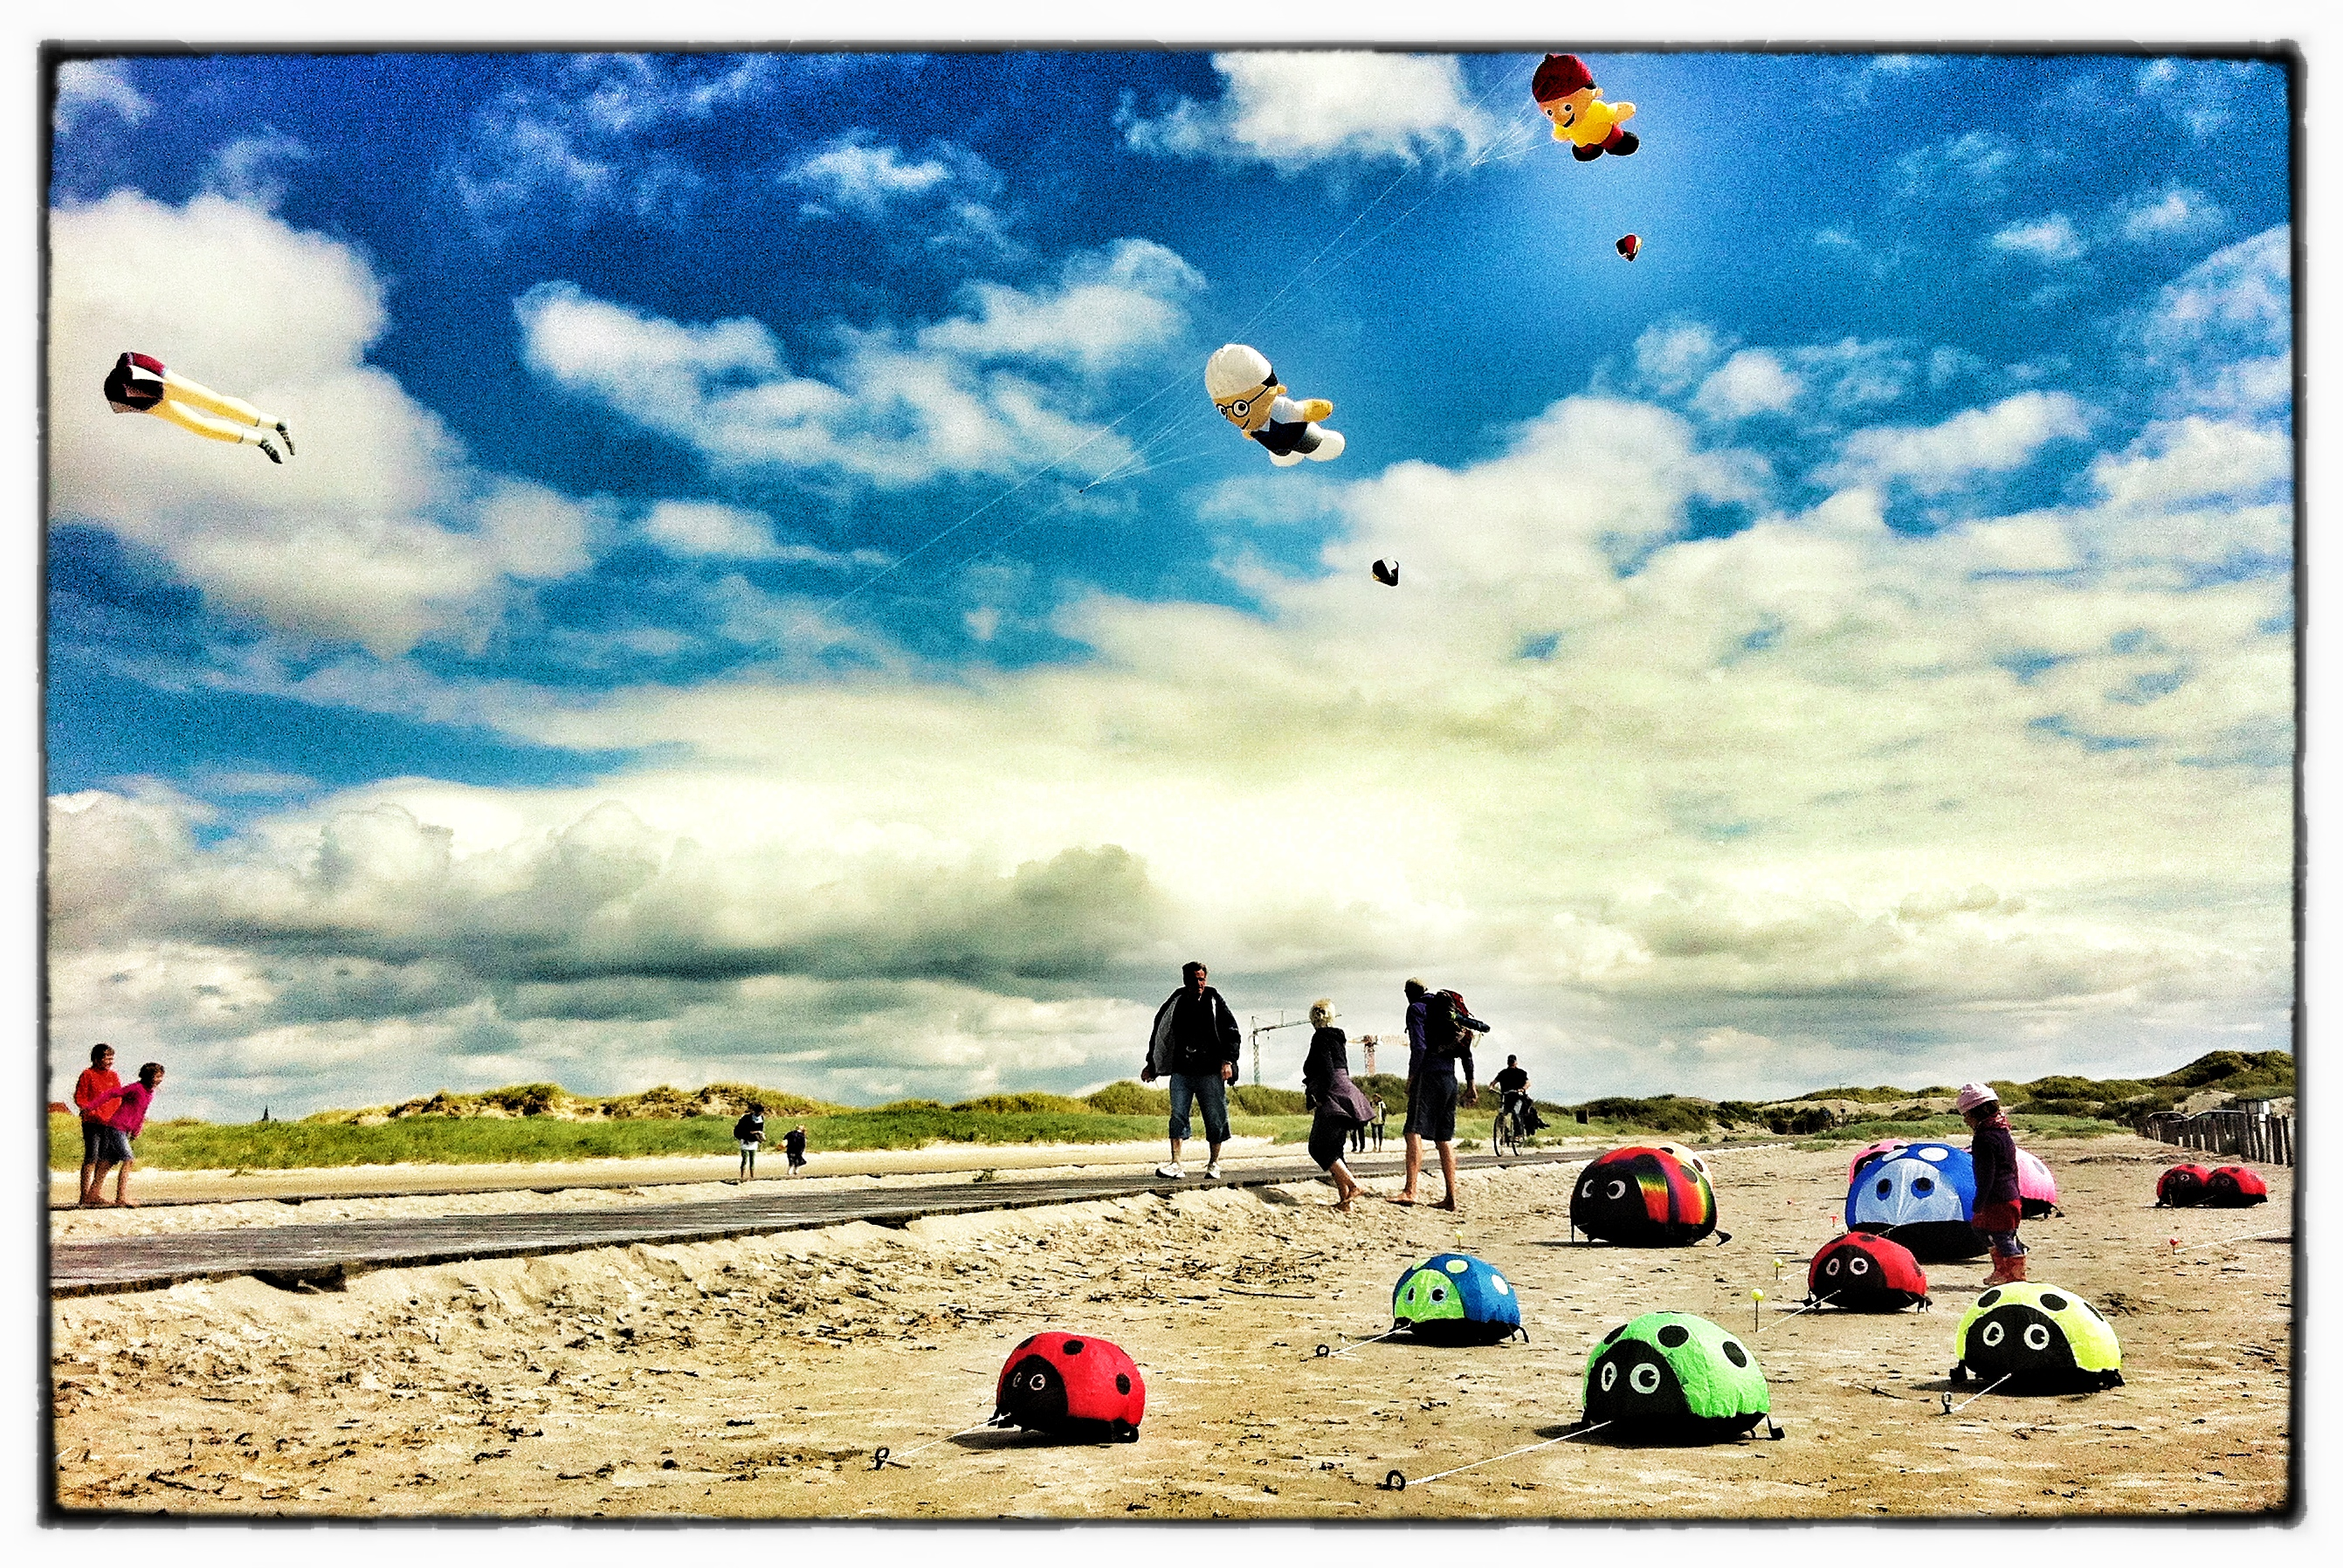 St. Peter Ording, August 2012